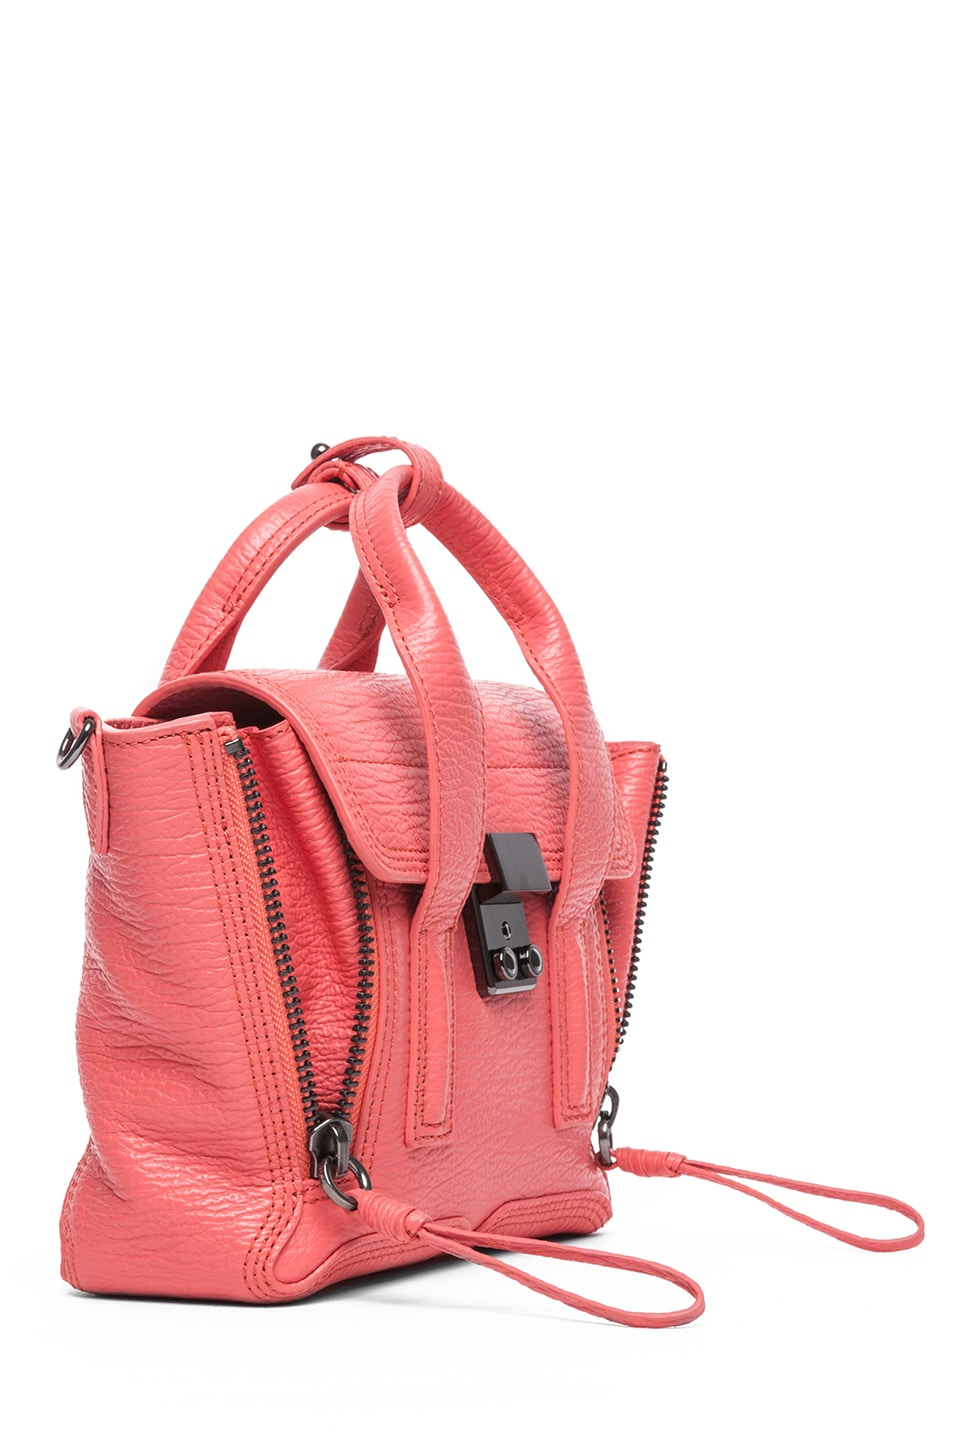 Image 3 of 3.1 phillip lim Mini Pashli Shark Embossed Satchel in Coral